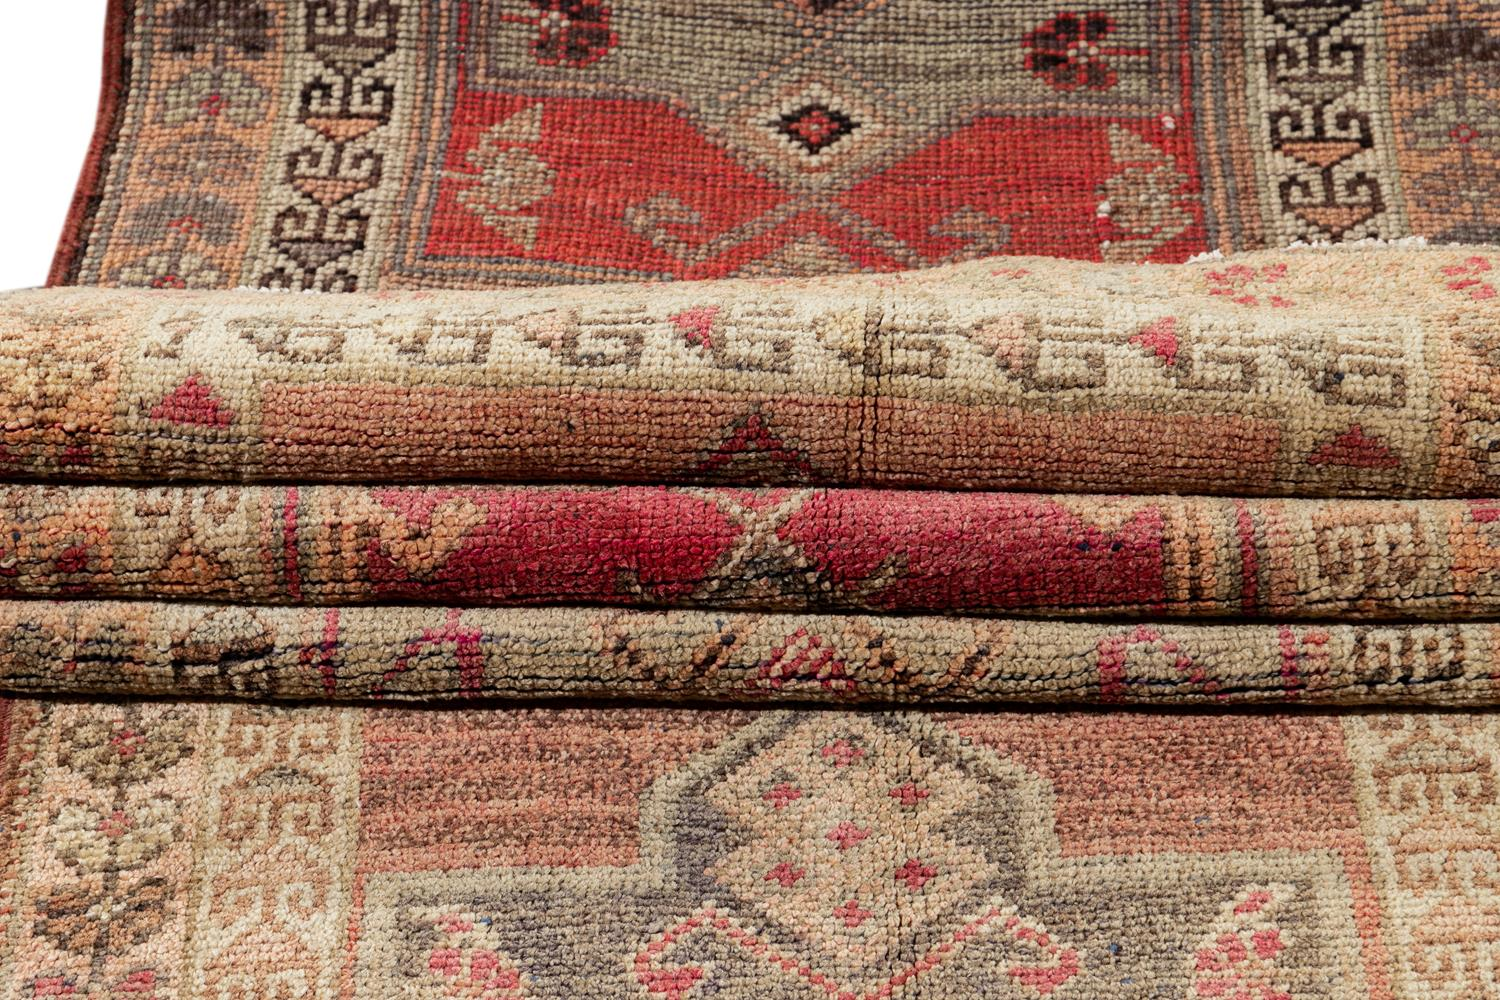 Early 20th Century Anatolian Village Runner Rug 3' x 15'